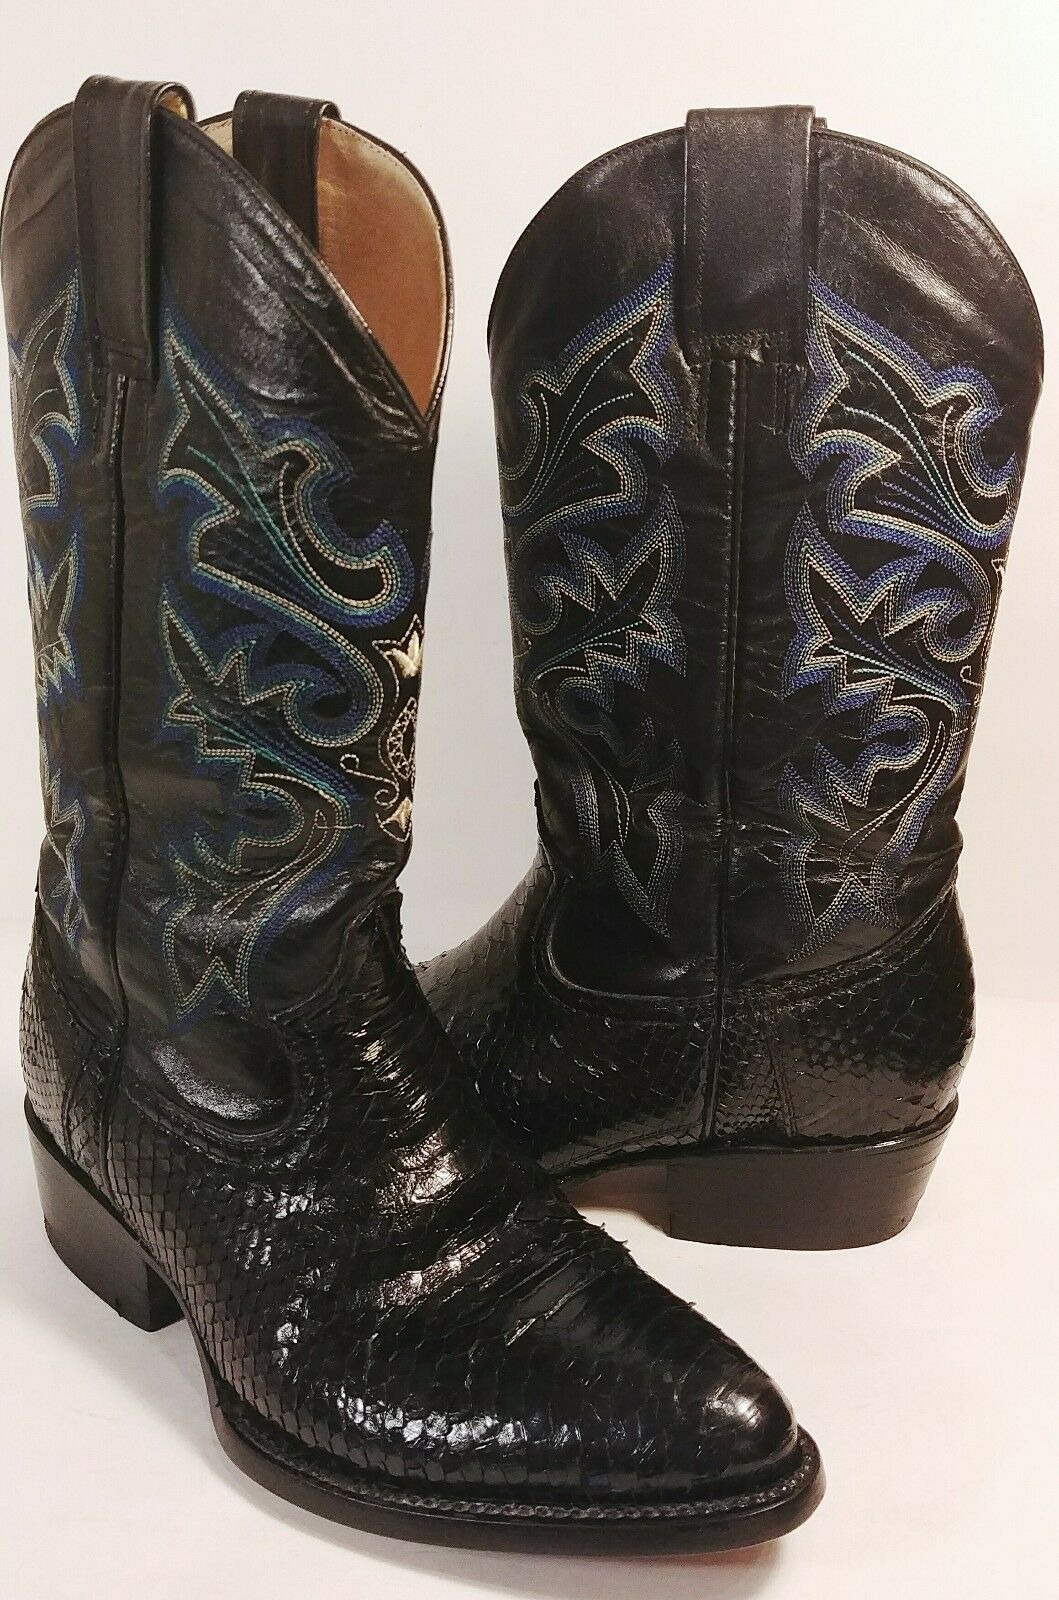 colorado Boots Black Snakeskin bluee Embroidered Western Boots Women's 6M EUC